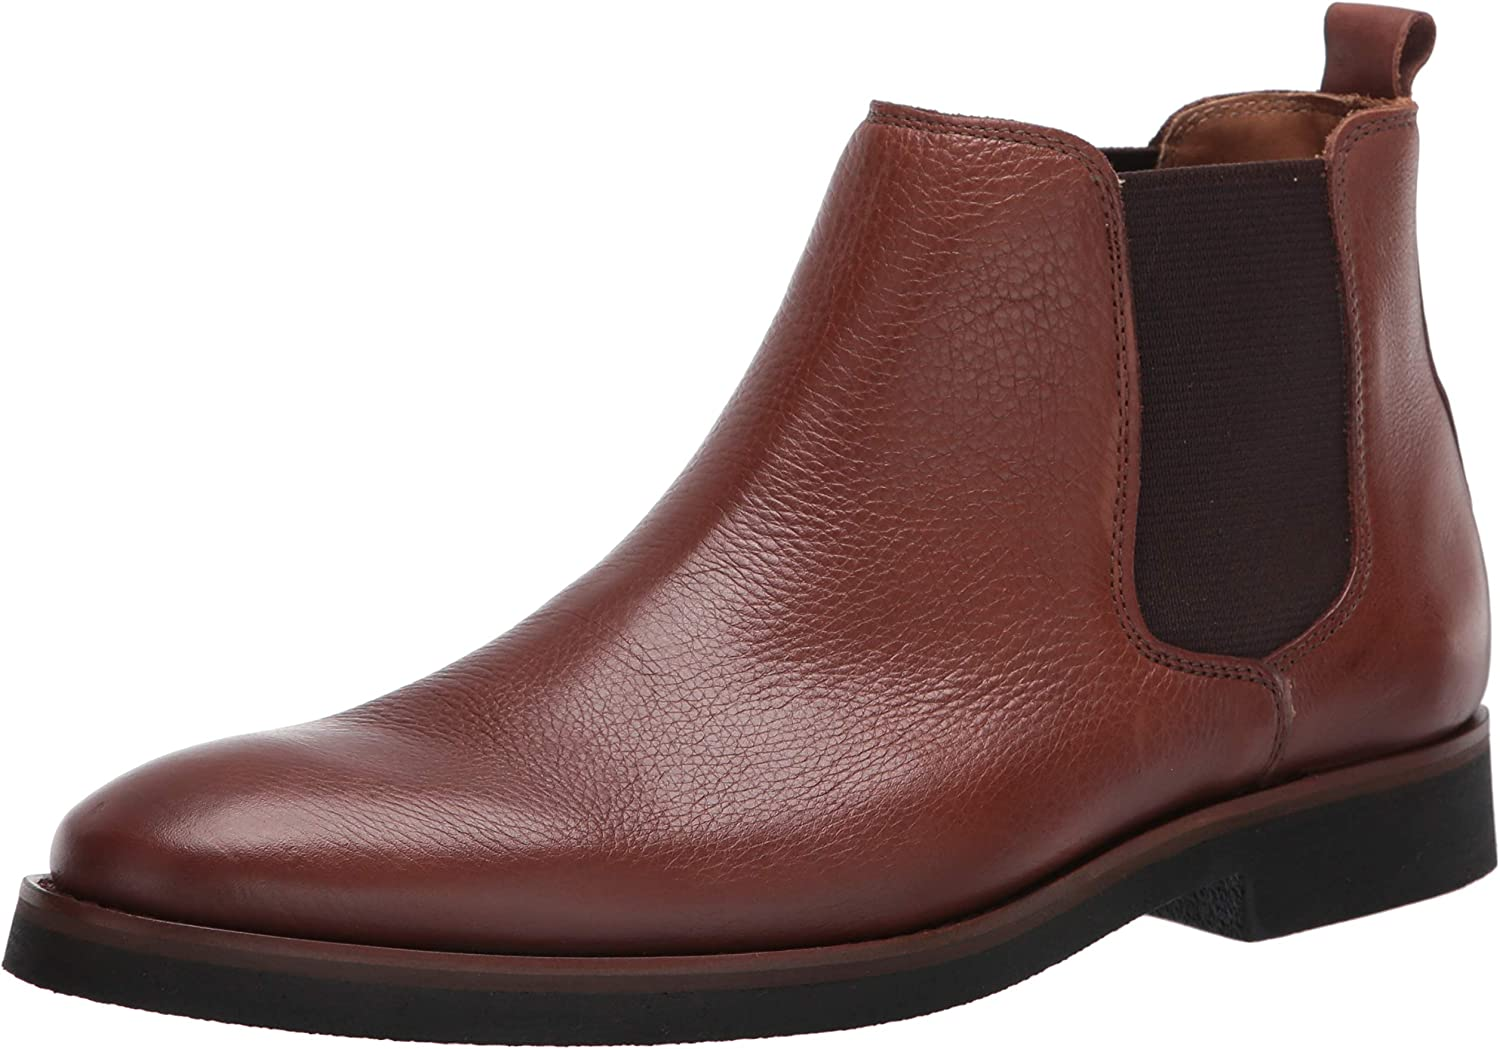 Driver Club USA At the price Men's Luxury Leather Lug Boot Ankle with Time sale Sole